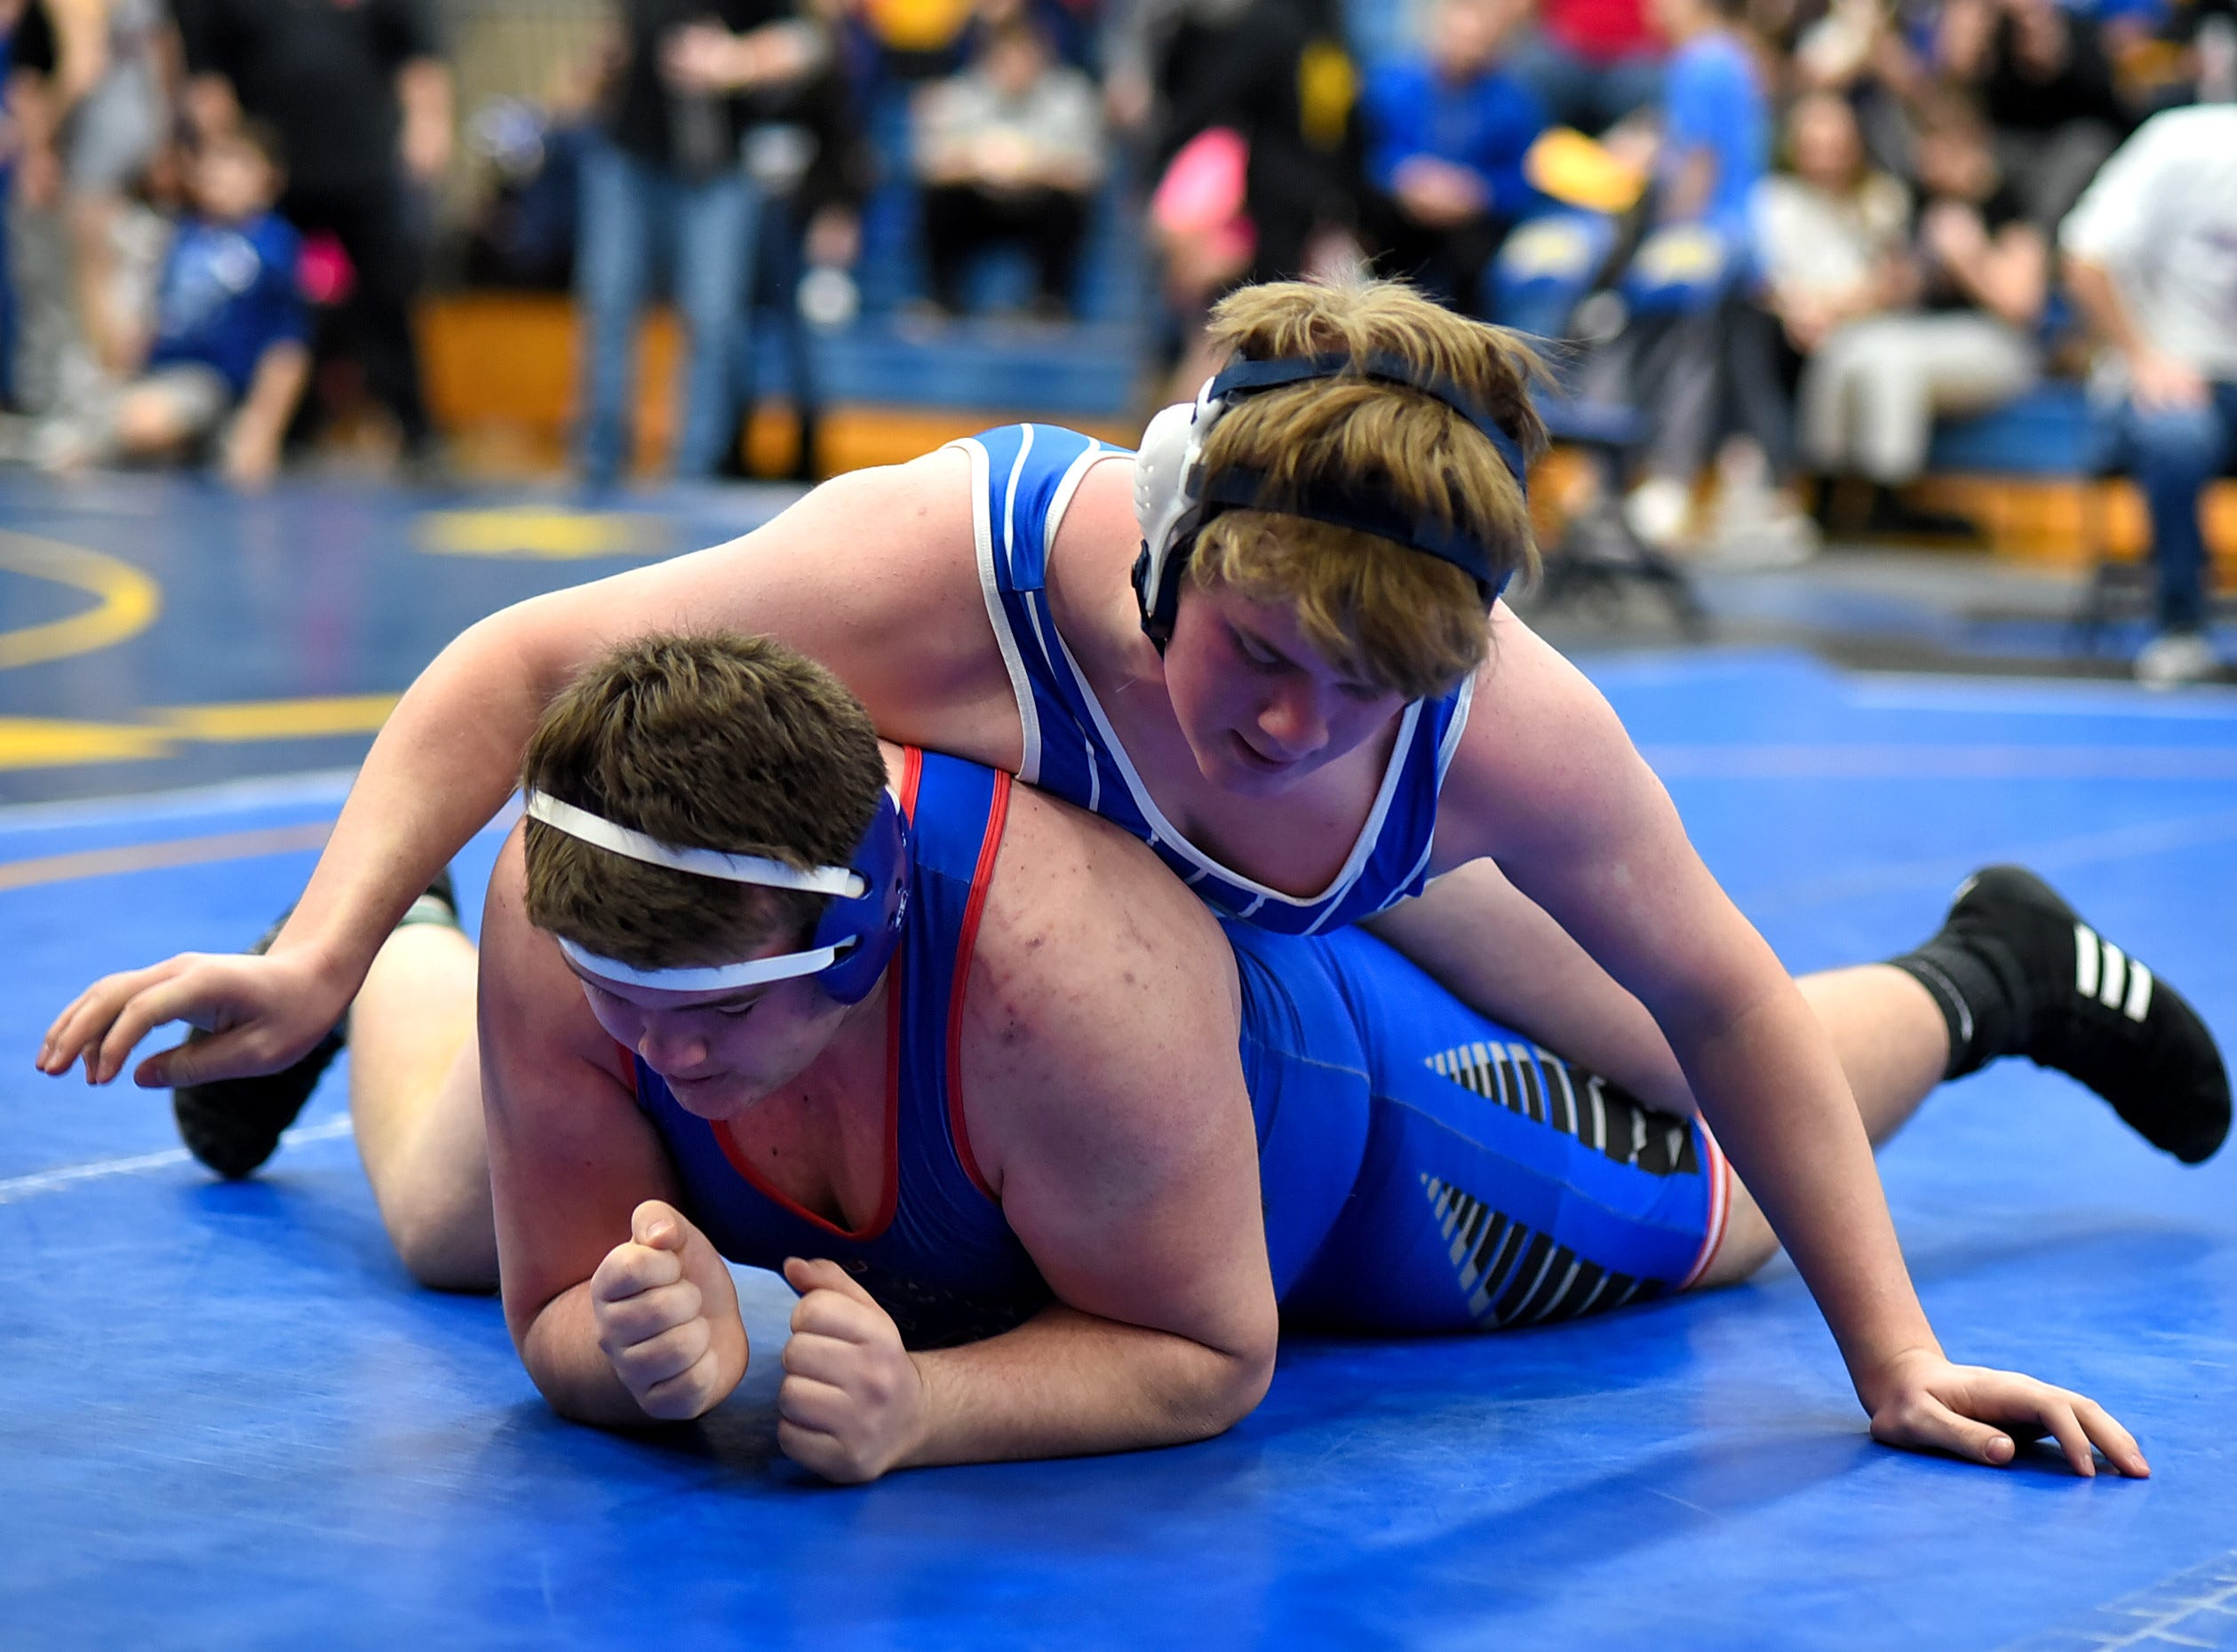 Michael Manning of Covington Catholic takes down Shawn Viessmann of Reading in 285 lbs. class first-round action at the Bob Kearns Madeira Invitational, January 4, 2019.